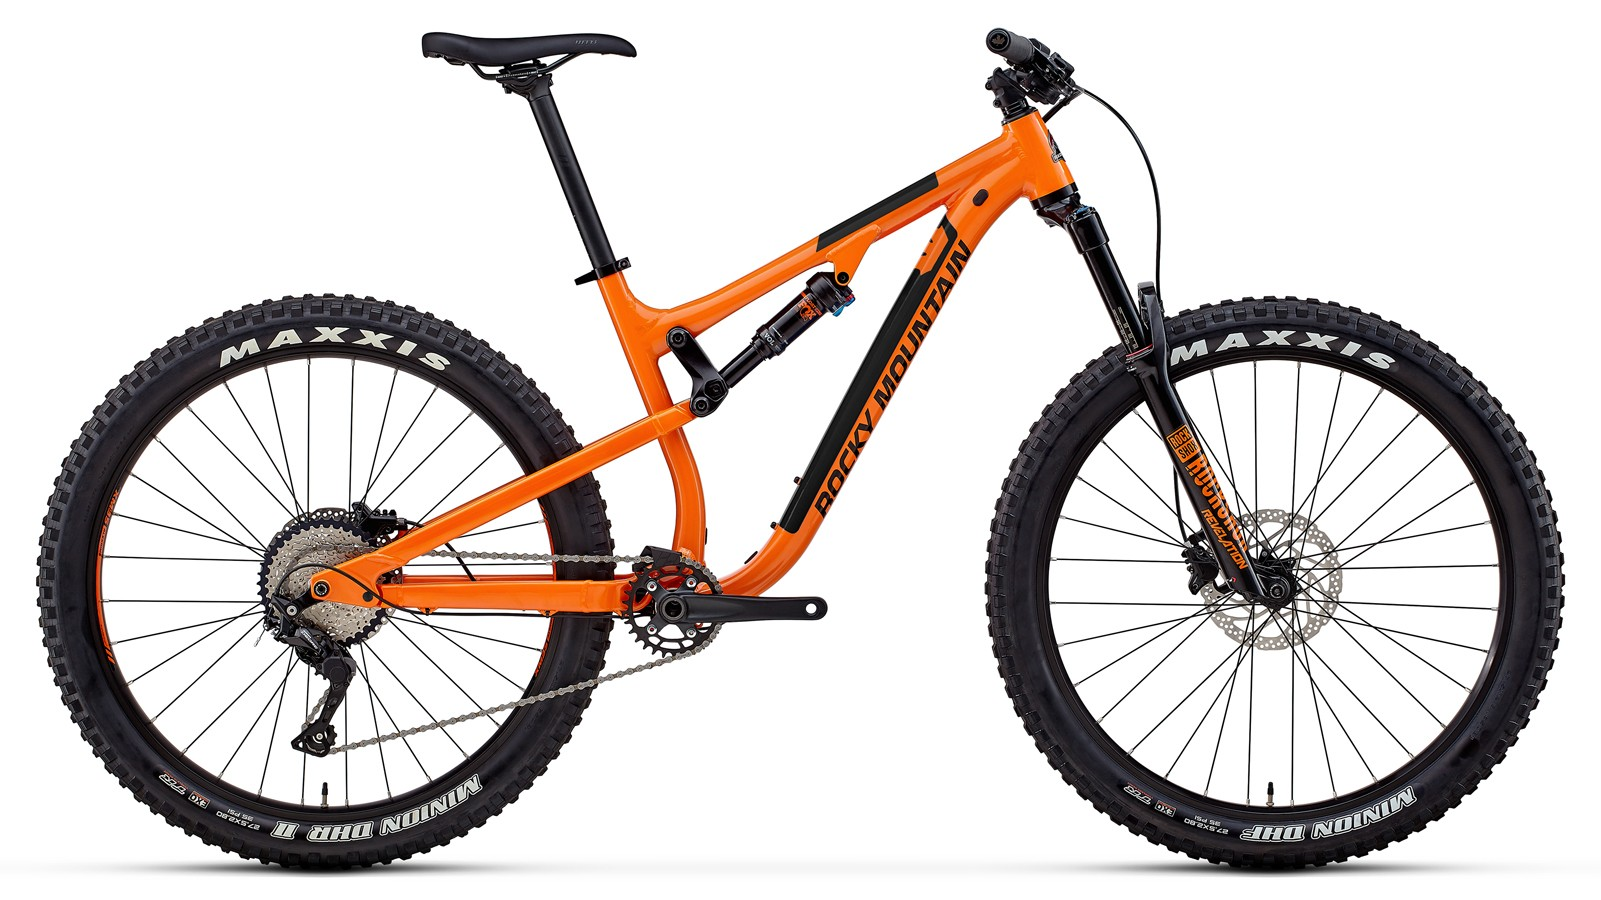 The Pipeline Alloy 30 is the base model